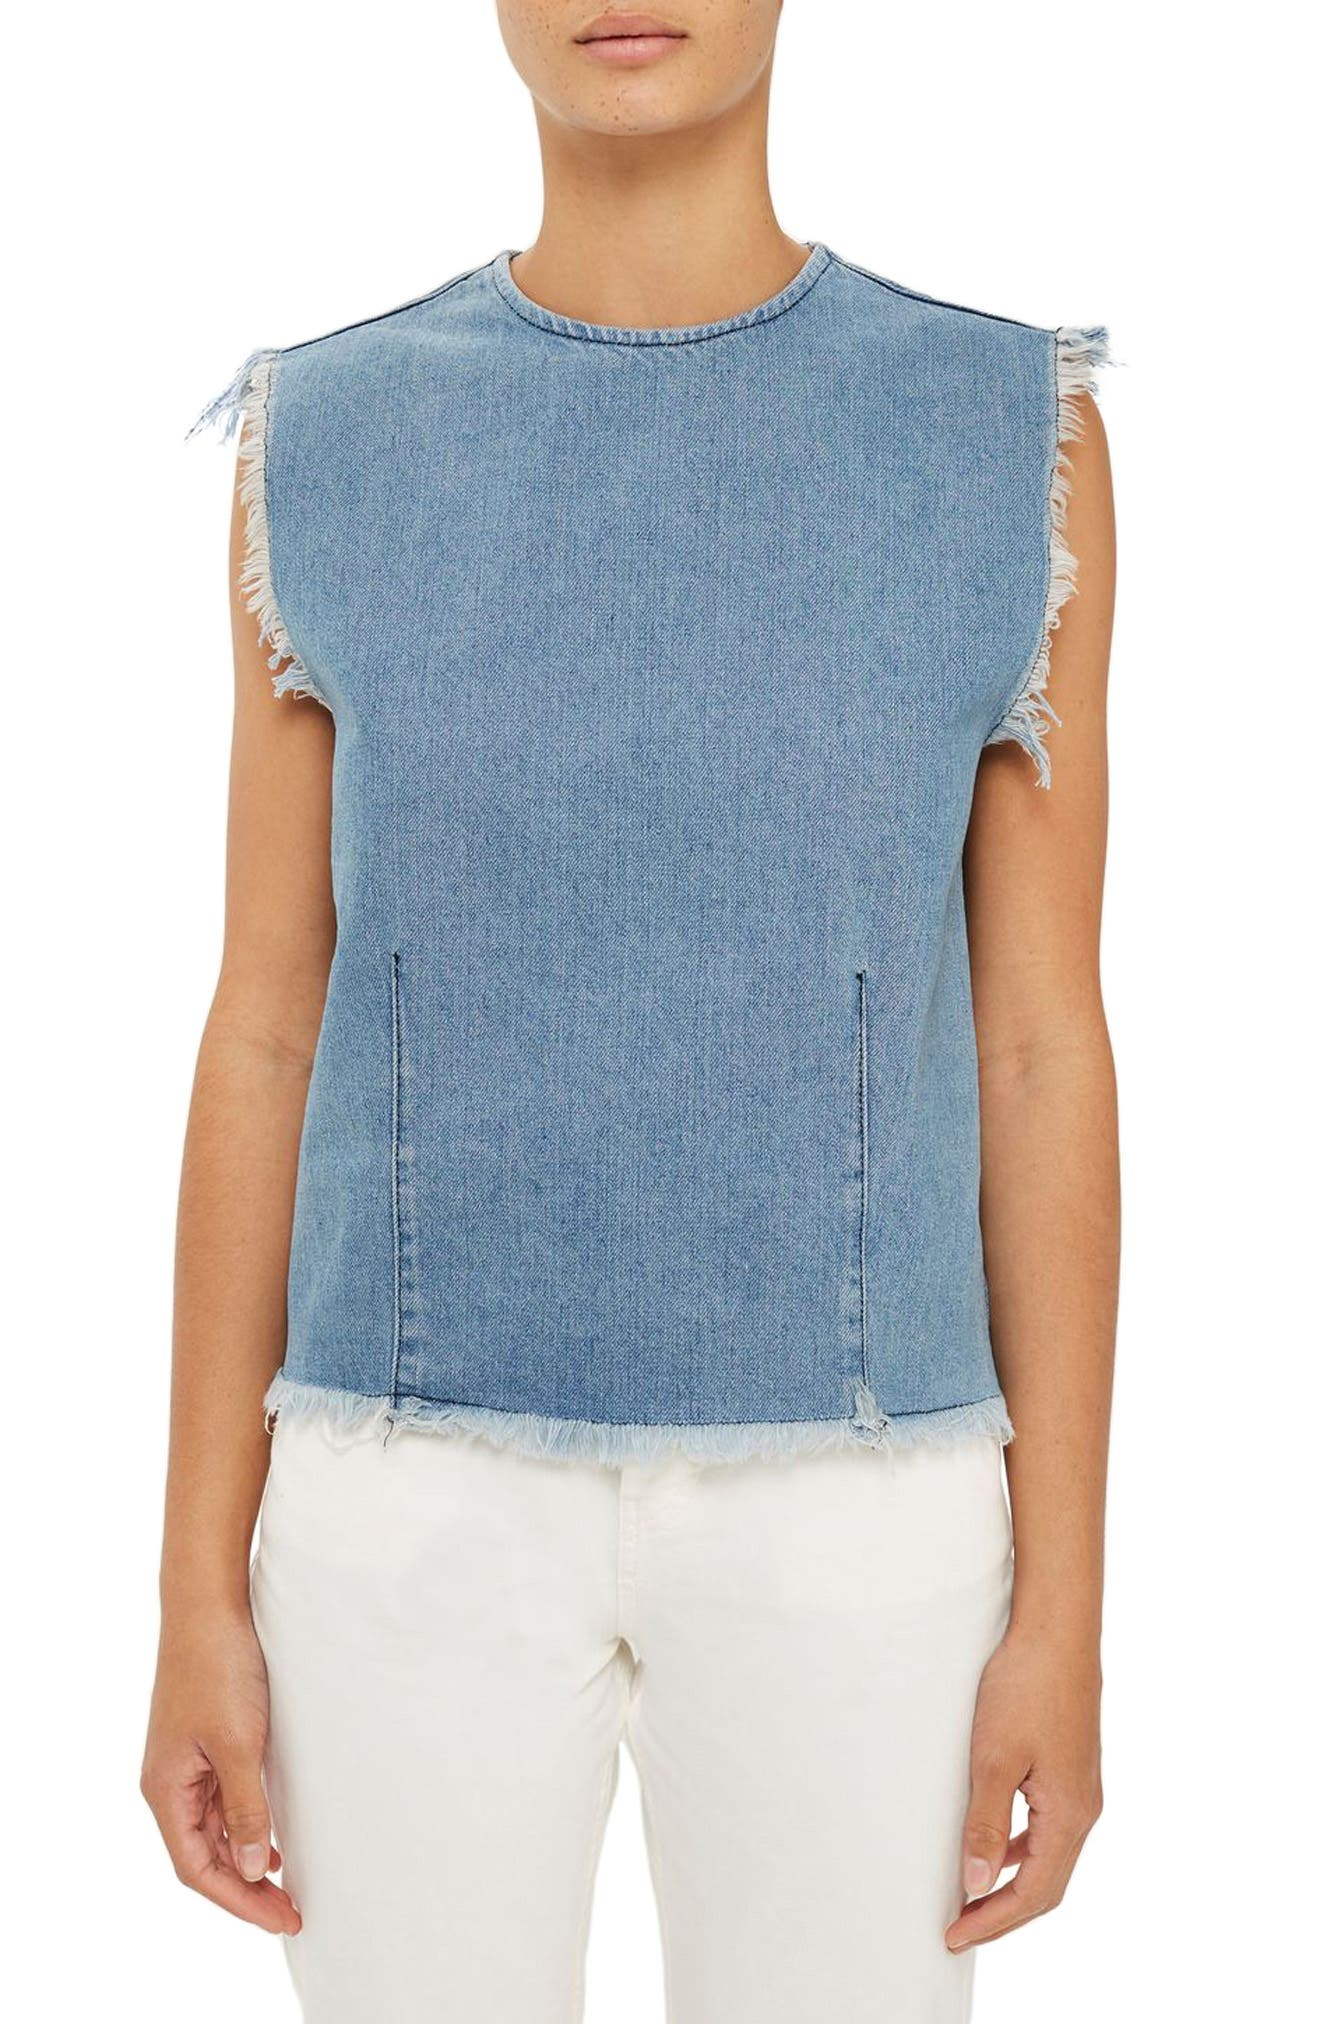 Topshop Boutique Denim Tank